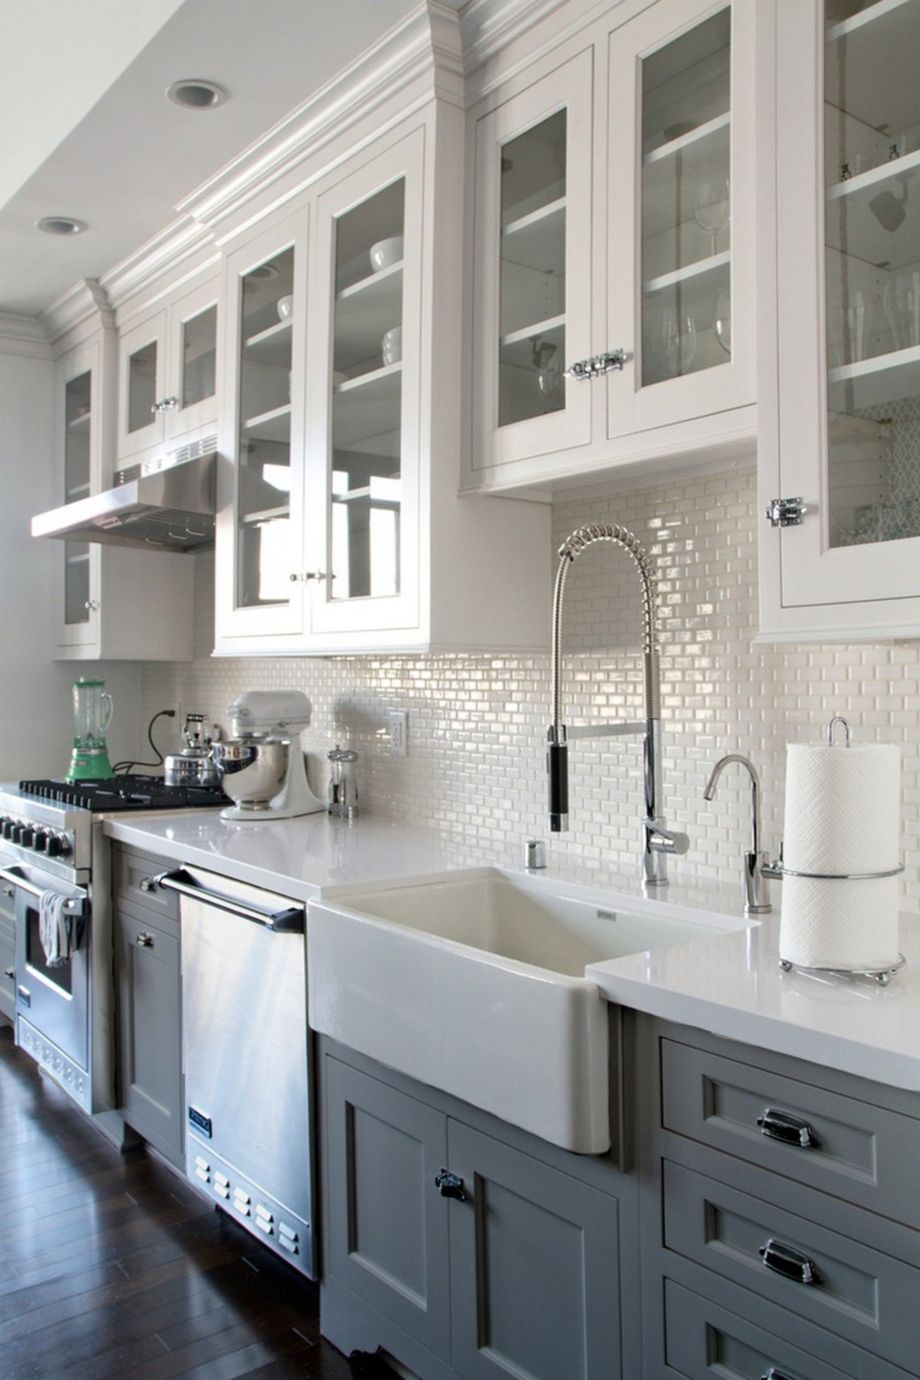 77 Cool Grey Kitchen Cabinet Ideas A Home For Us Kitchen